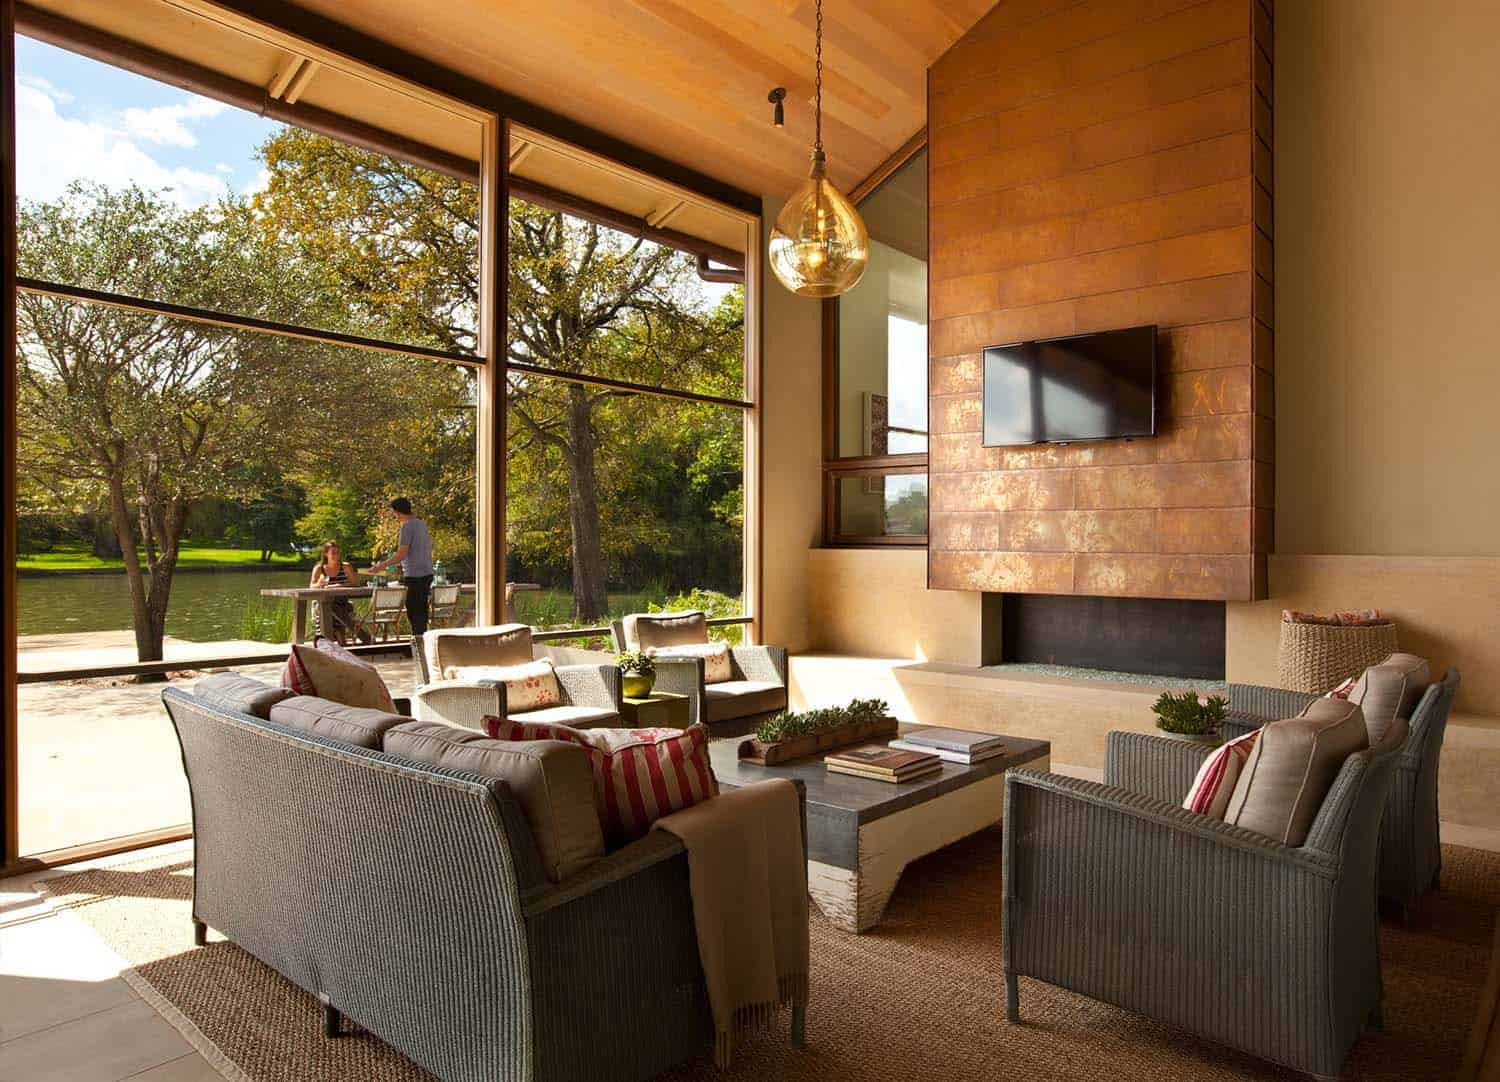 Contemporary Lake House Renovation-Furman Keil Architects-13-1 Kindesign